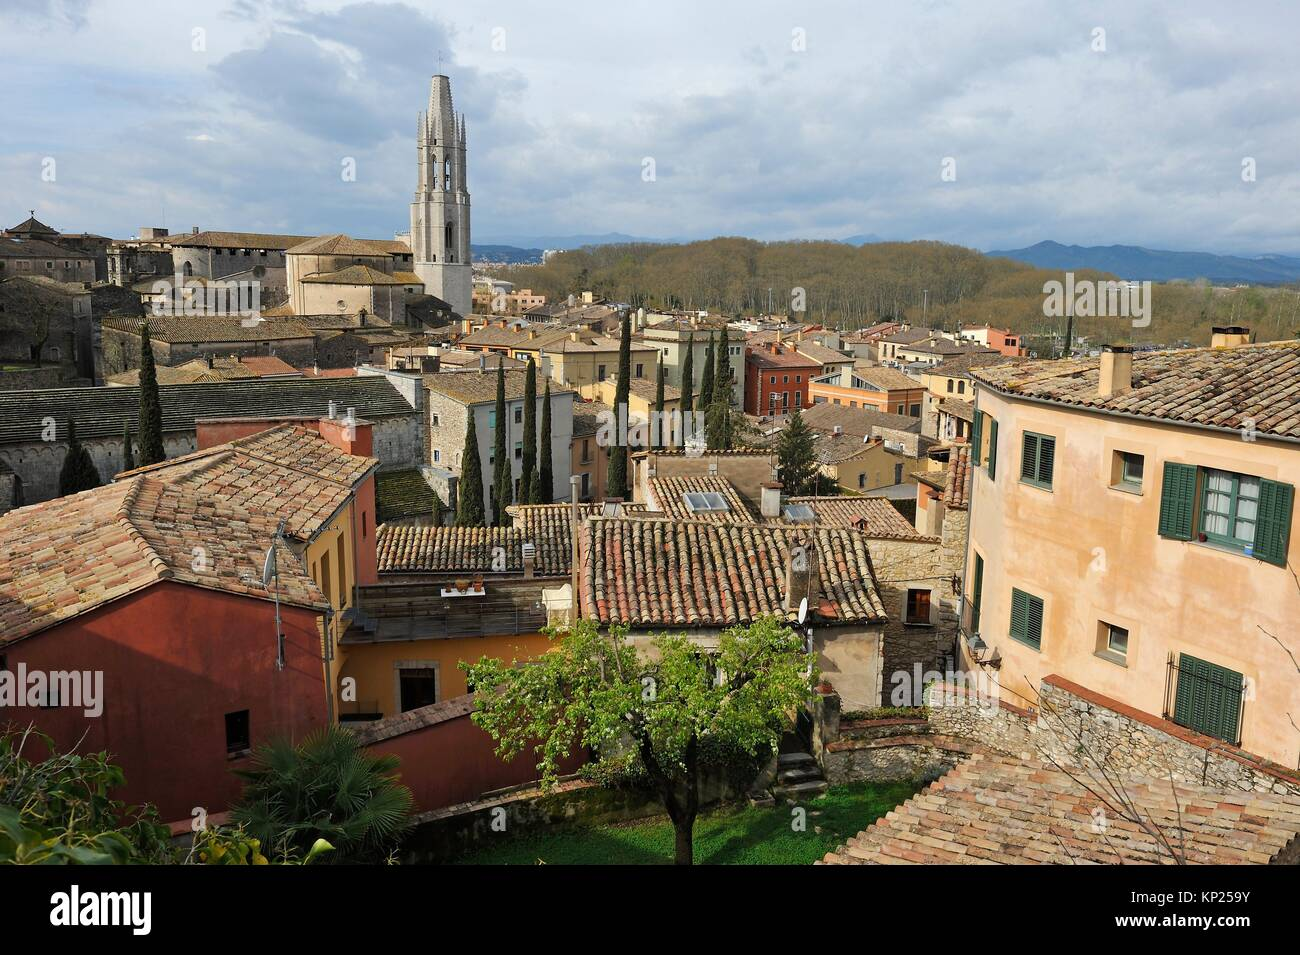 overview of Girona seen from the ramparts, Catalonia, Spain, Europe. - Stock Image